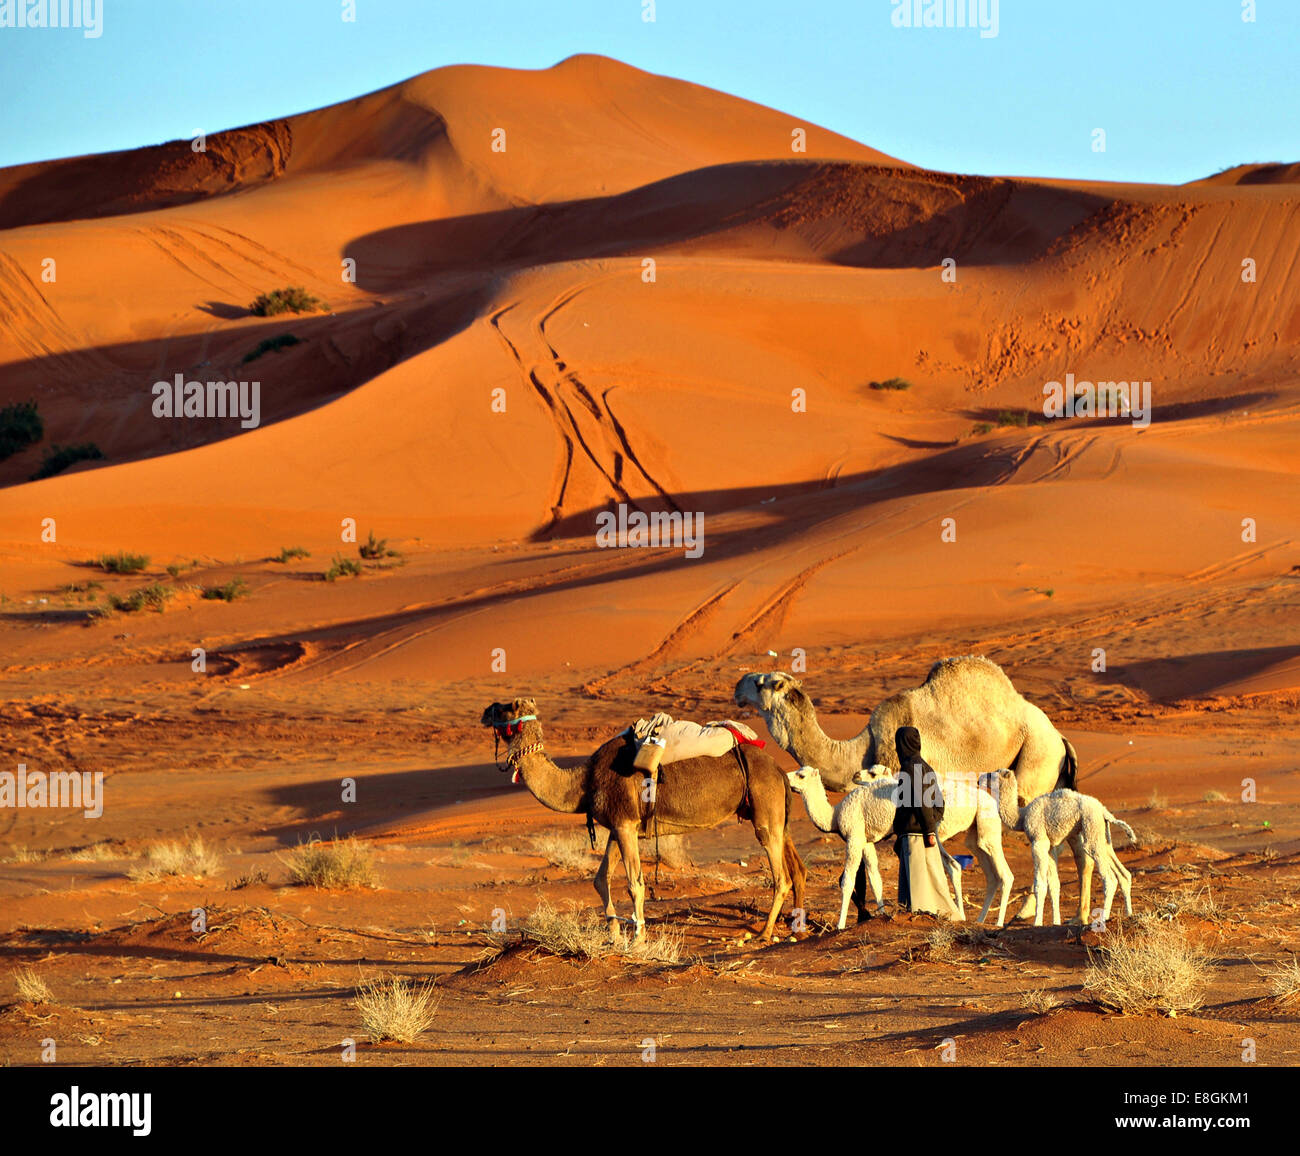 Saudi Arabia, Ghuwaymid, Zulfi St, Person with camels in desert - Stock Image